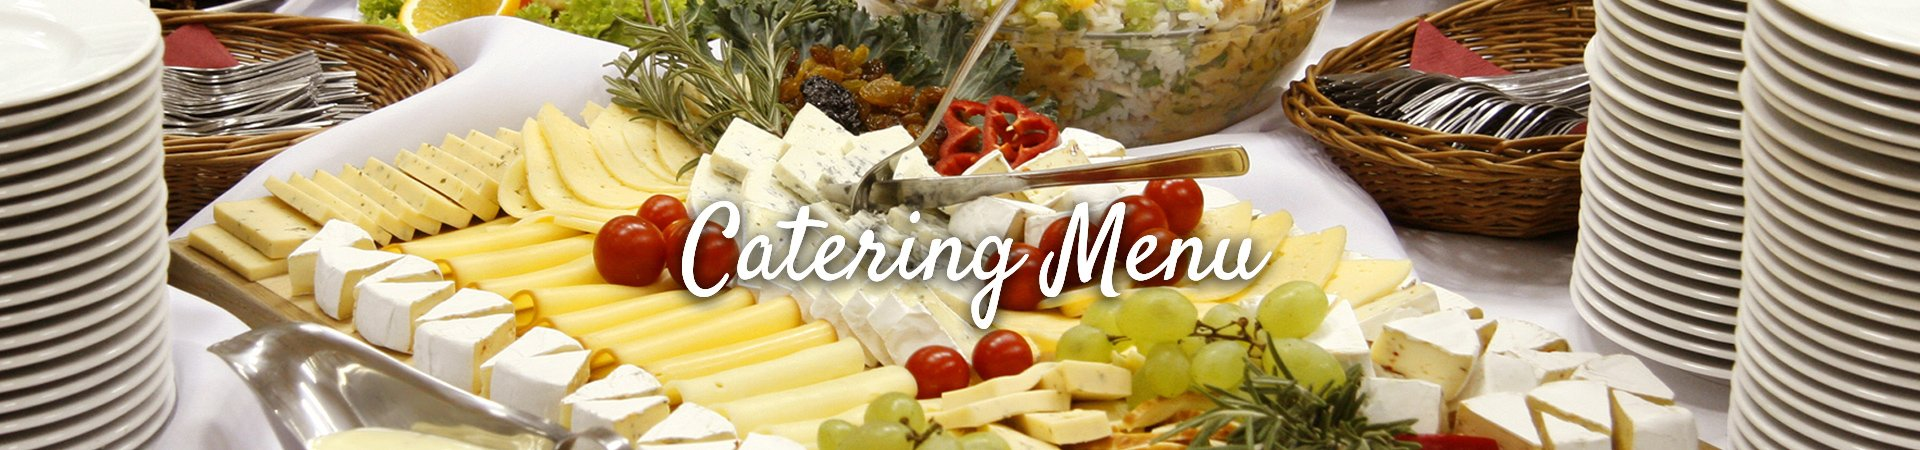 Group Sales - Catering Menu